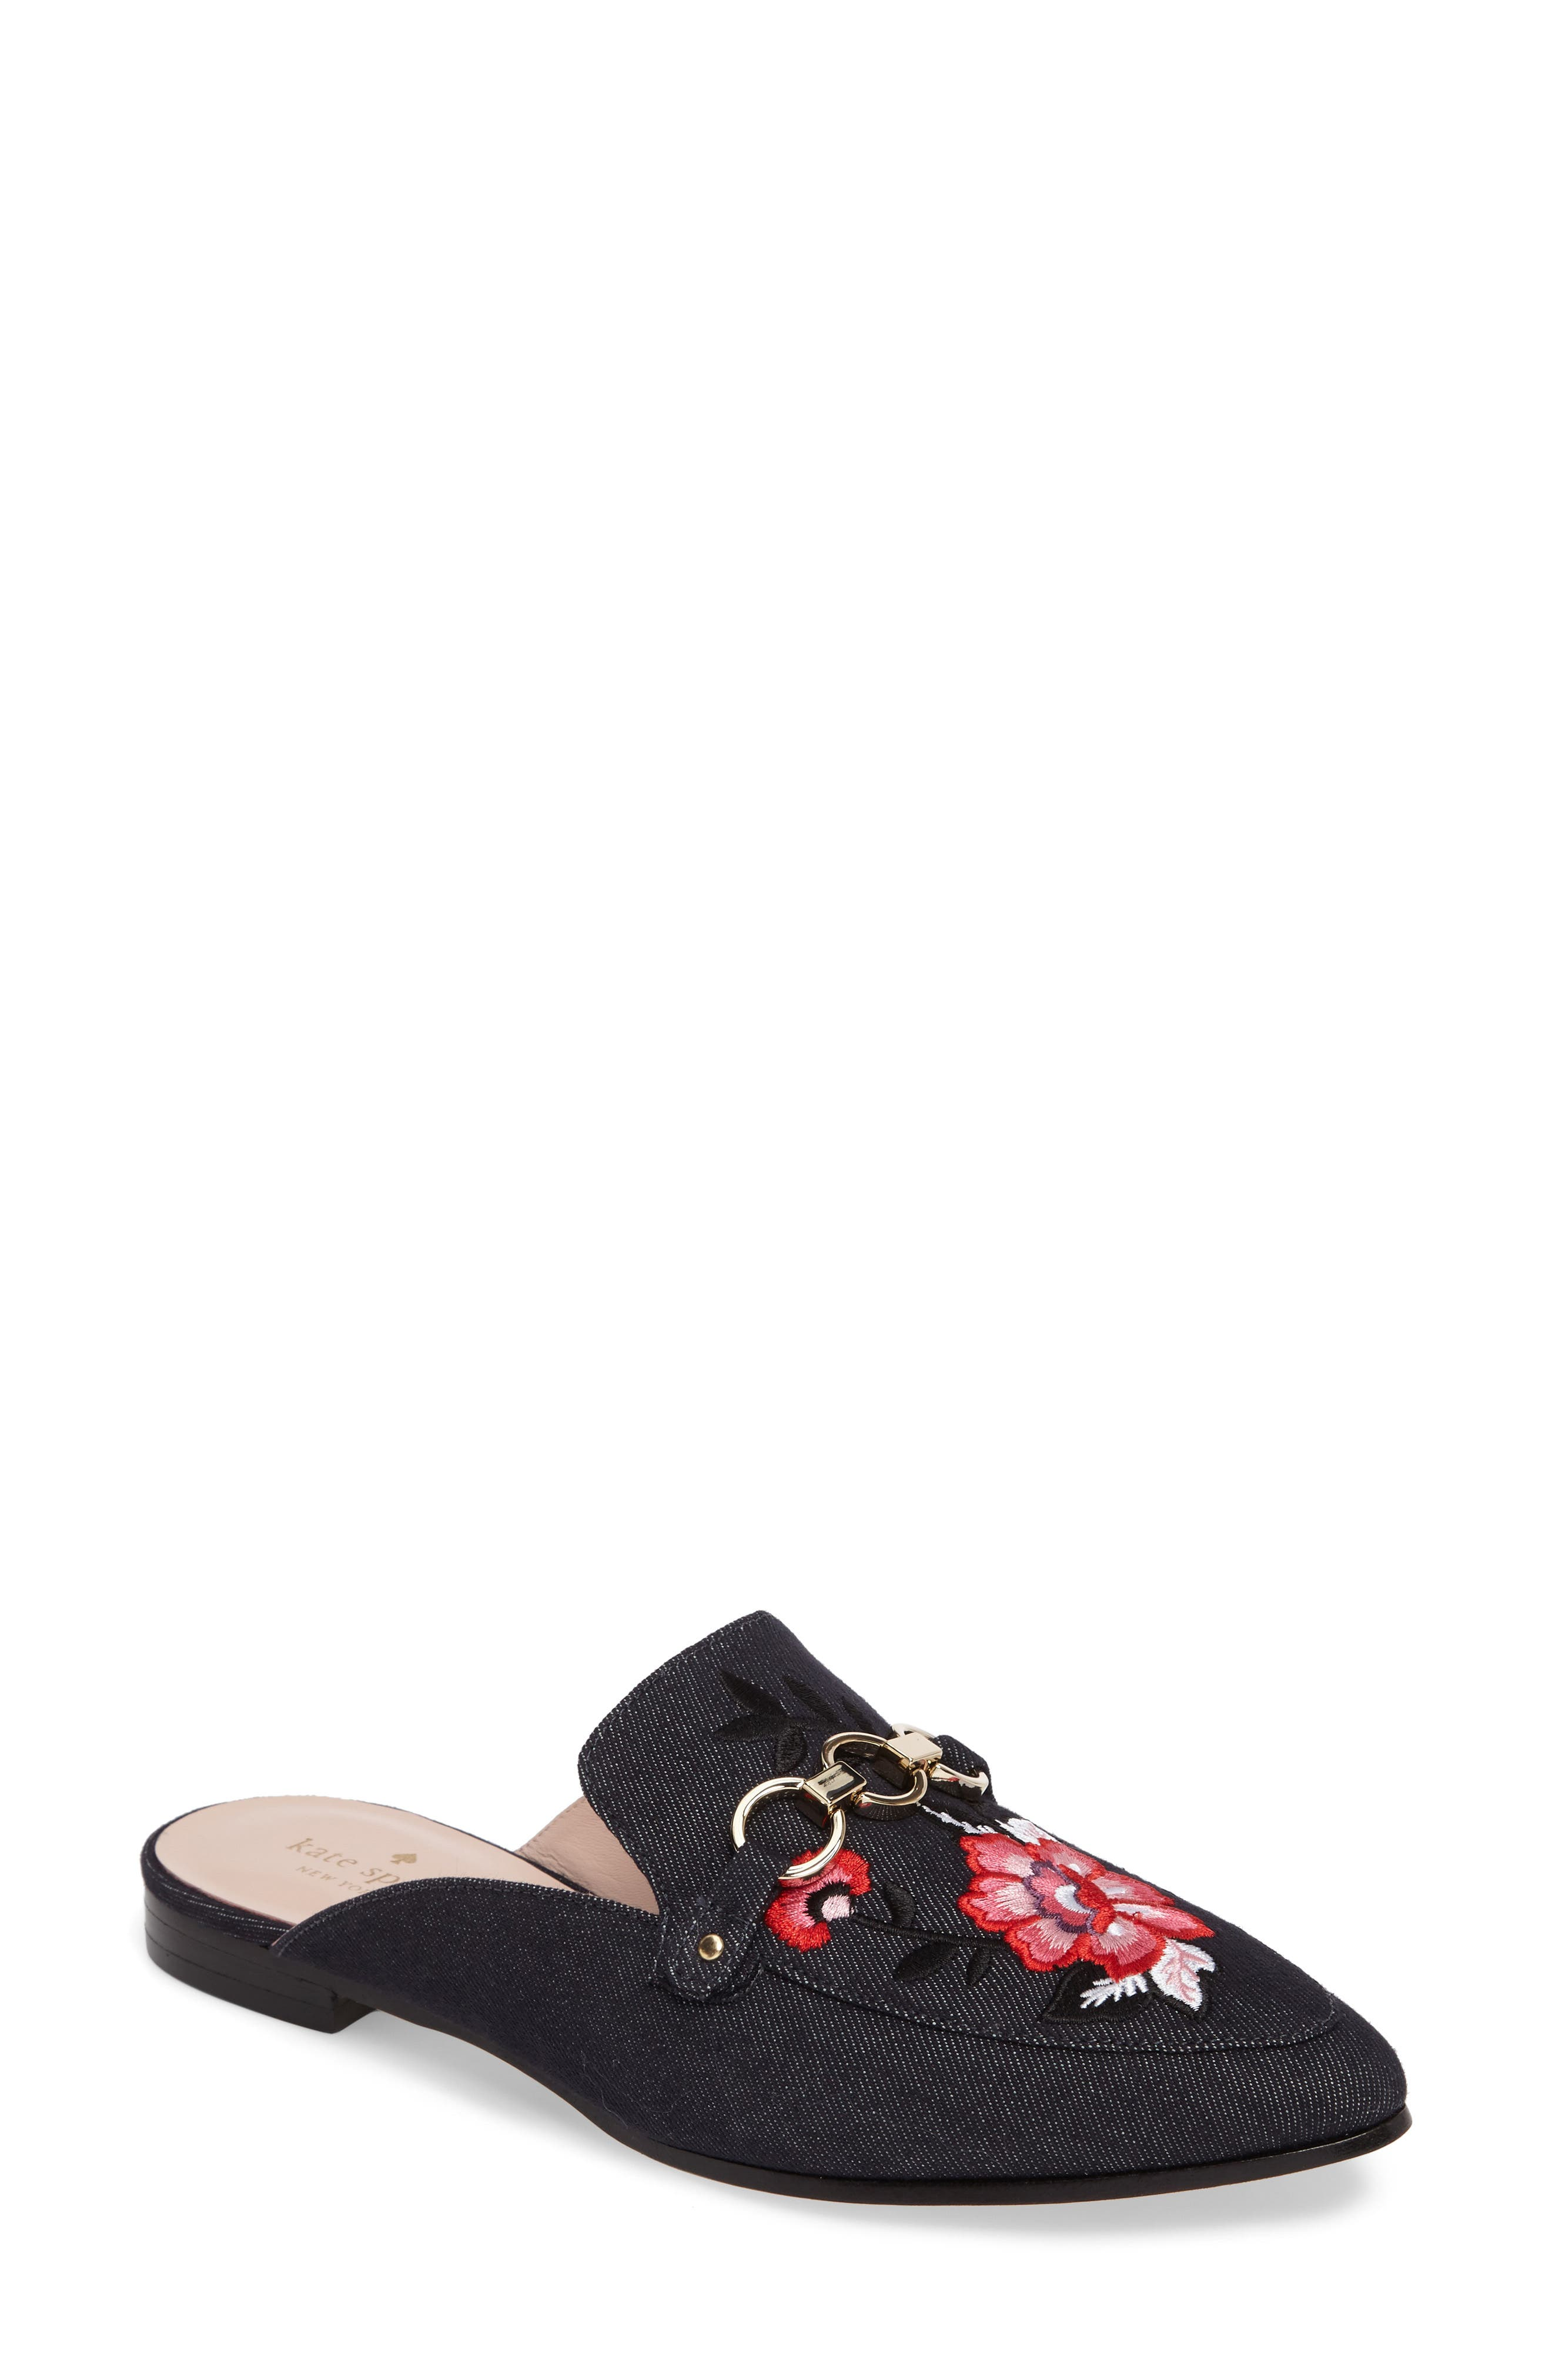 kate spade new york canyon embroidered loafer mule (Women)